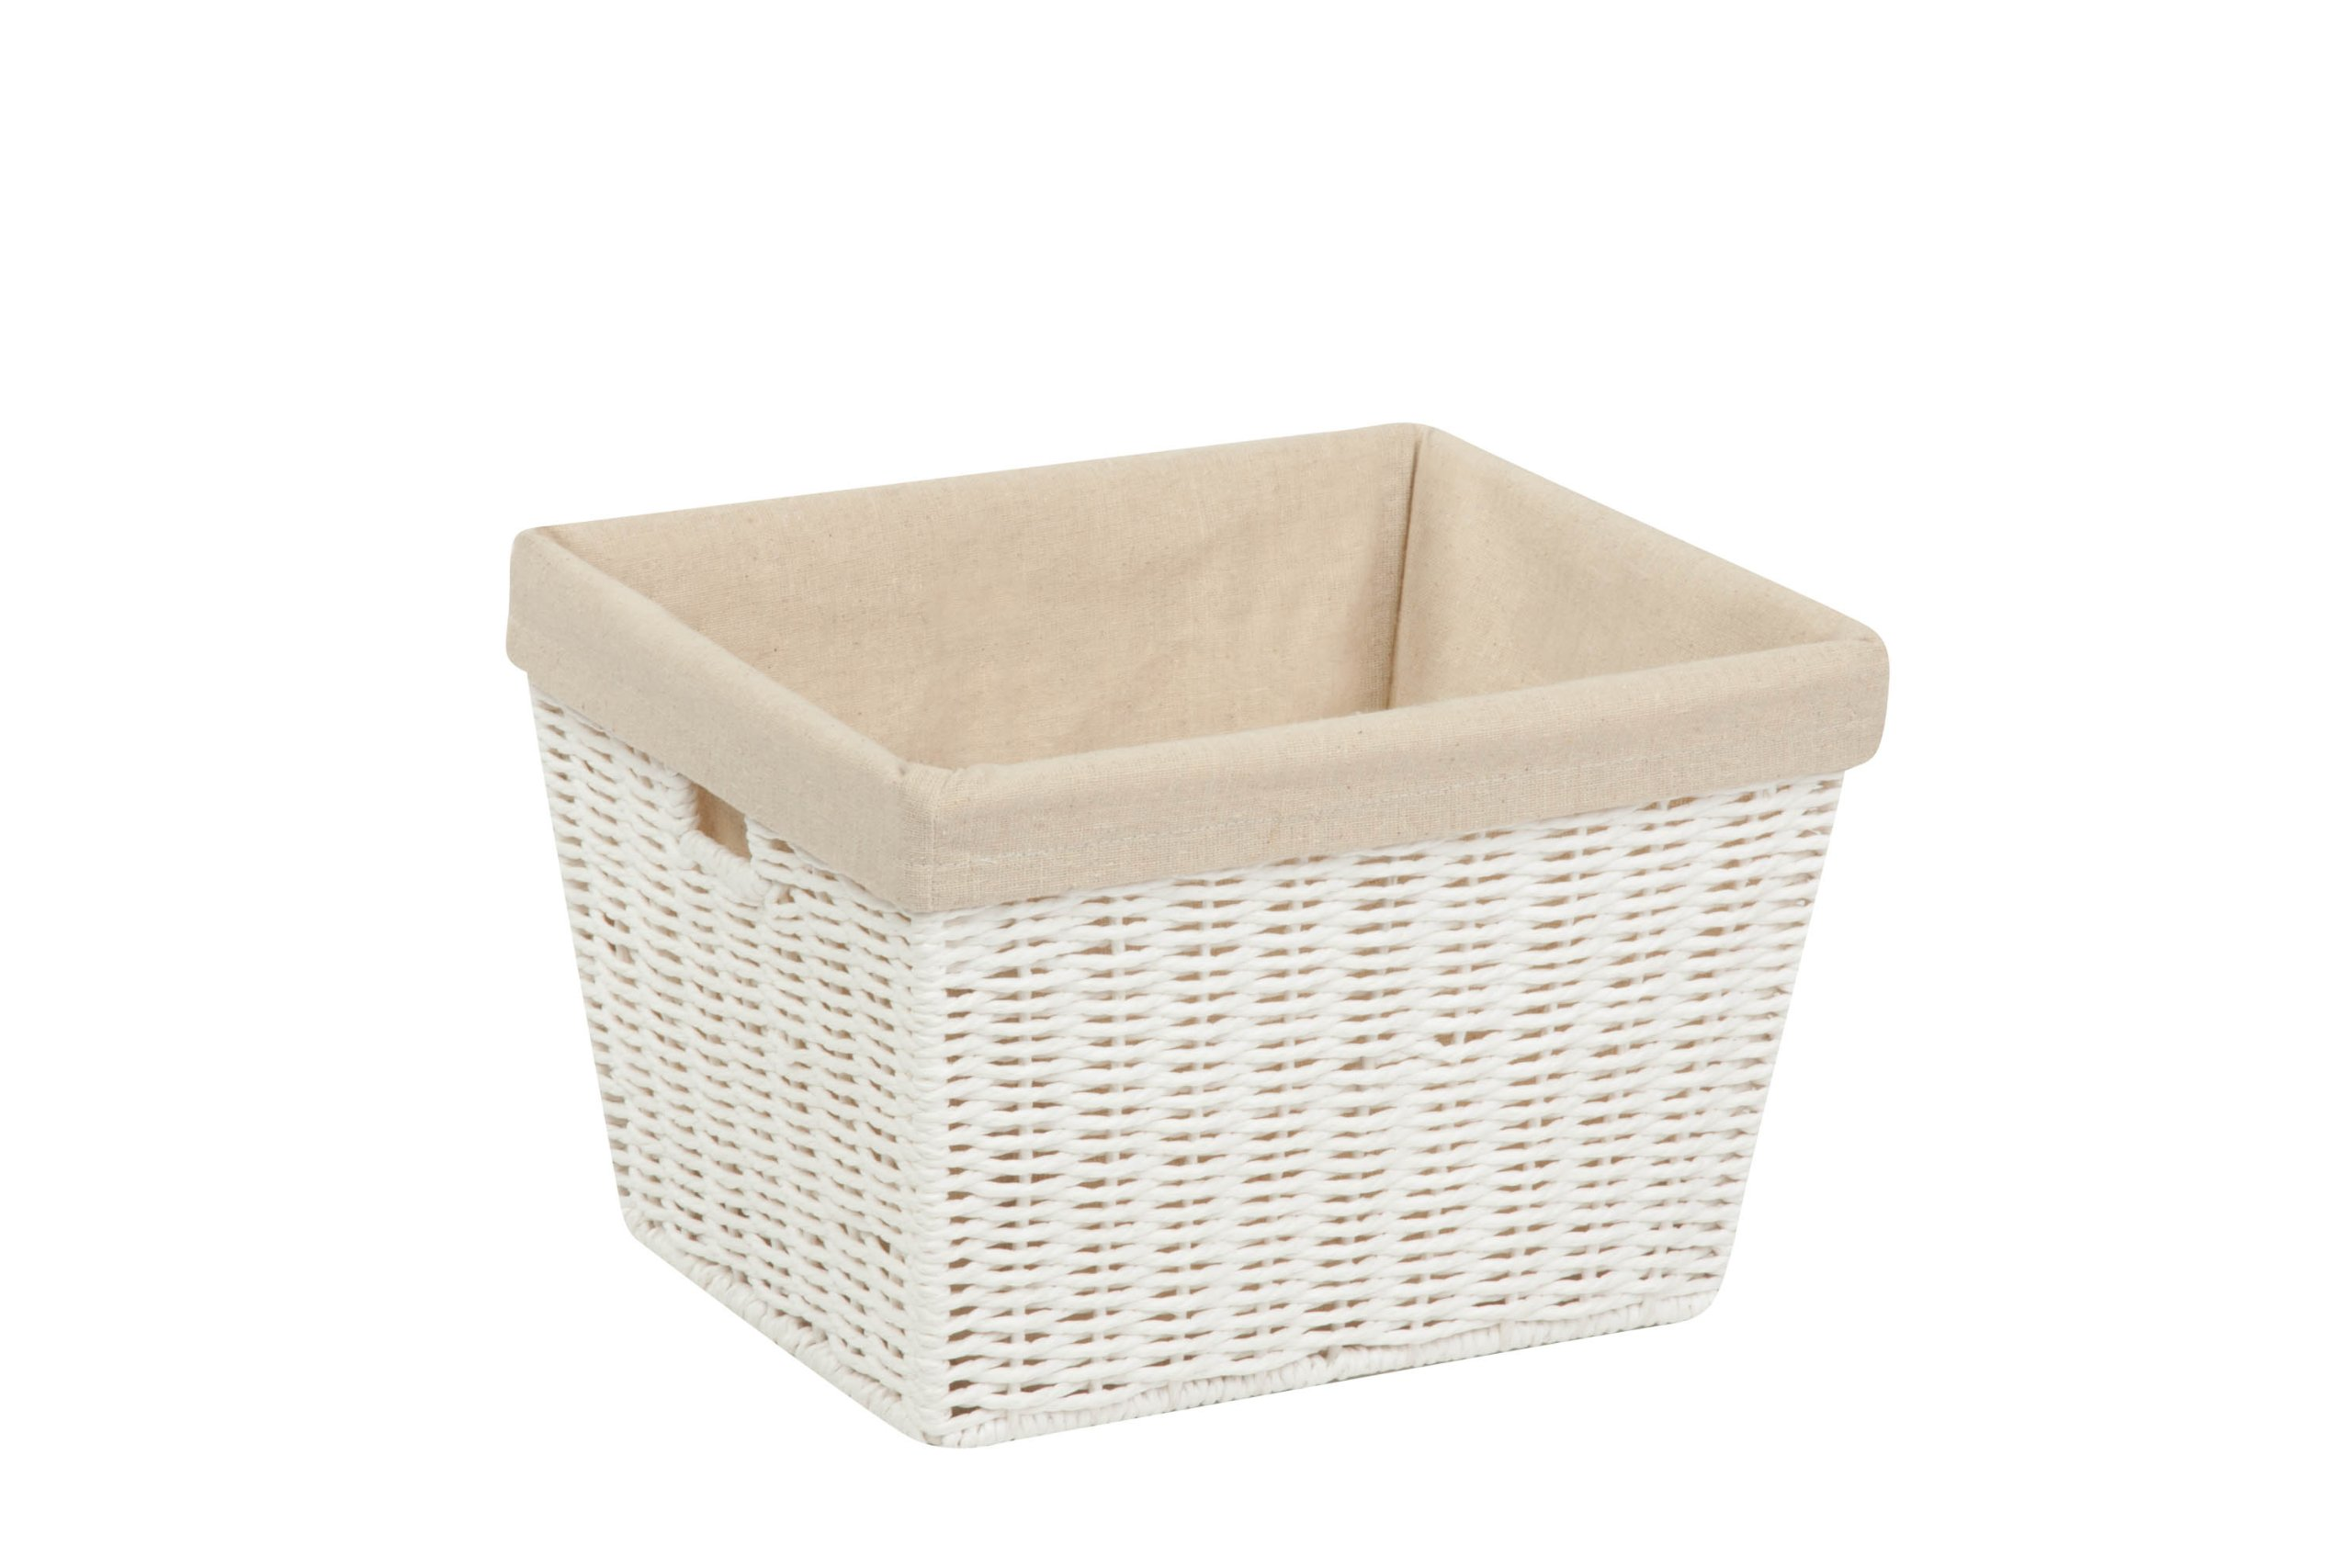 Honey-Can-Do STO-03560 Parchment Cord Basket with Handles and Liner, White, 10 x 12 x 8 inches